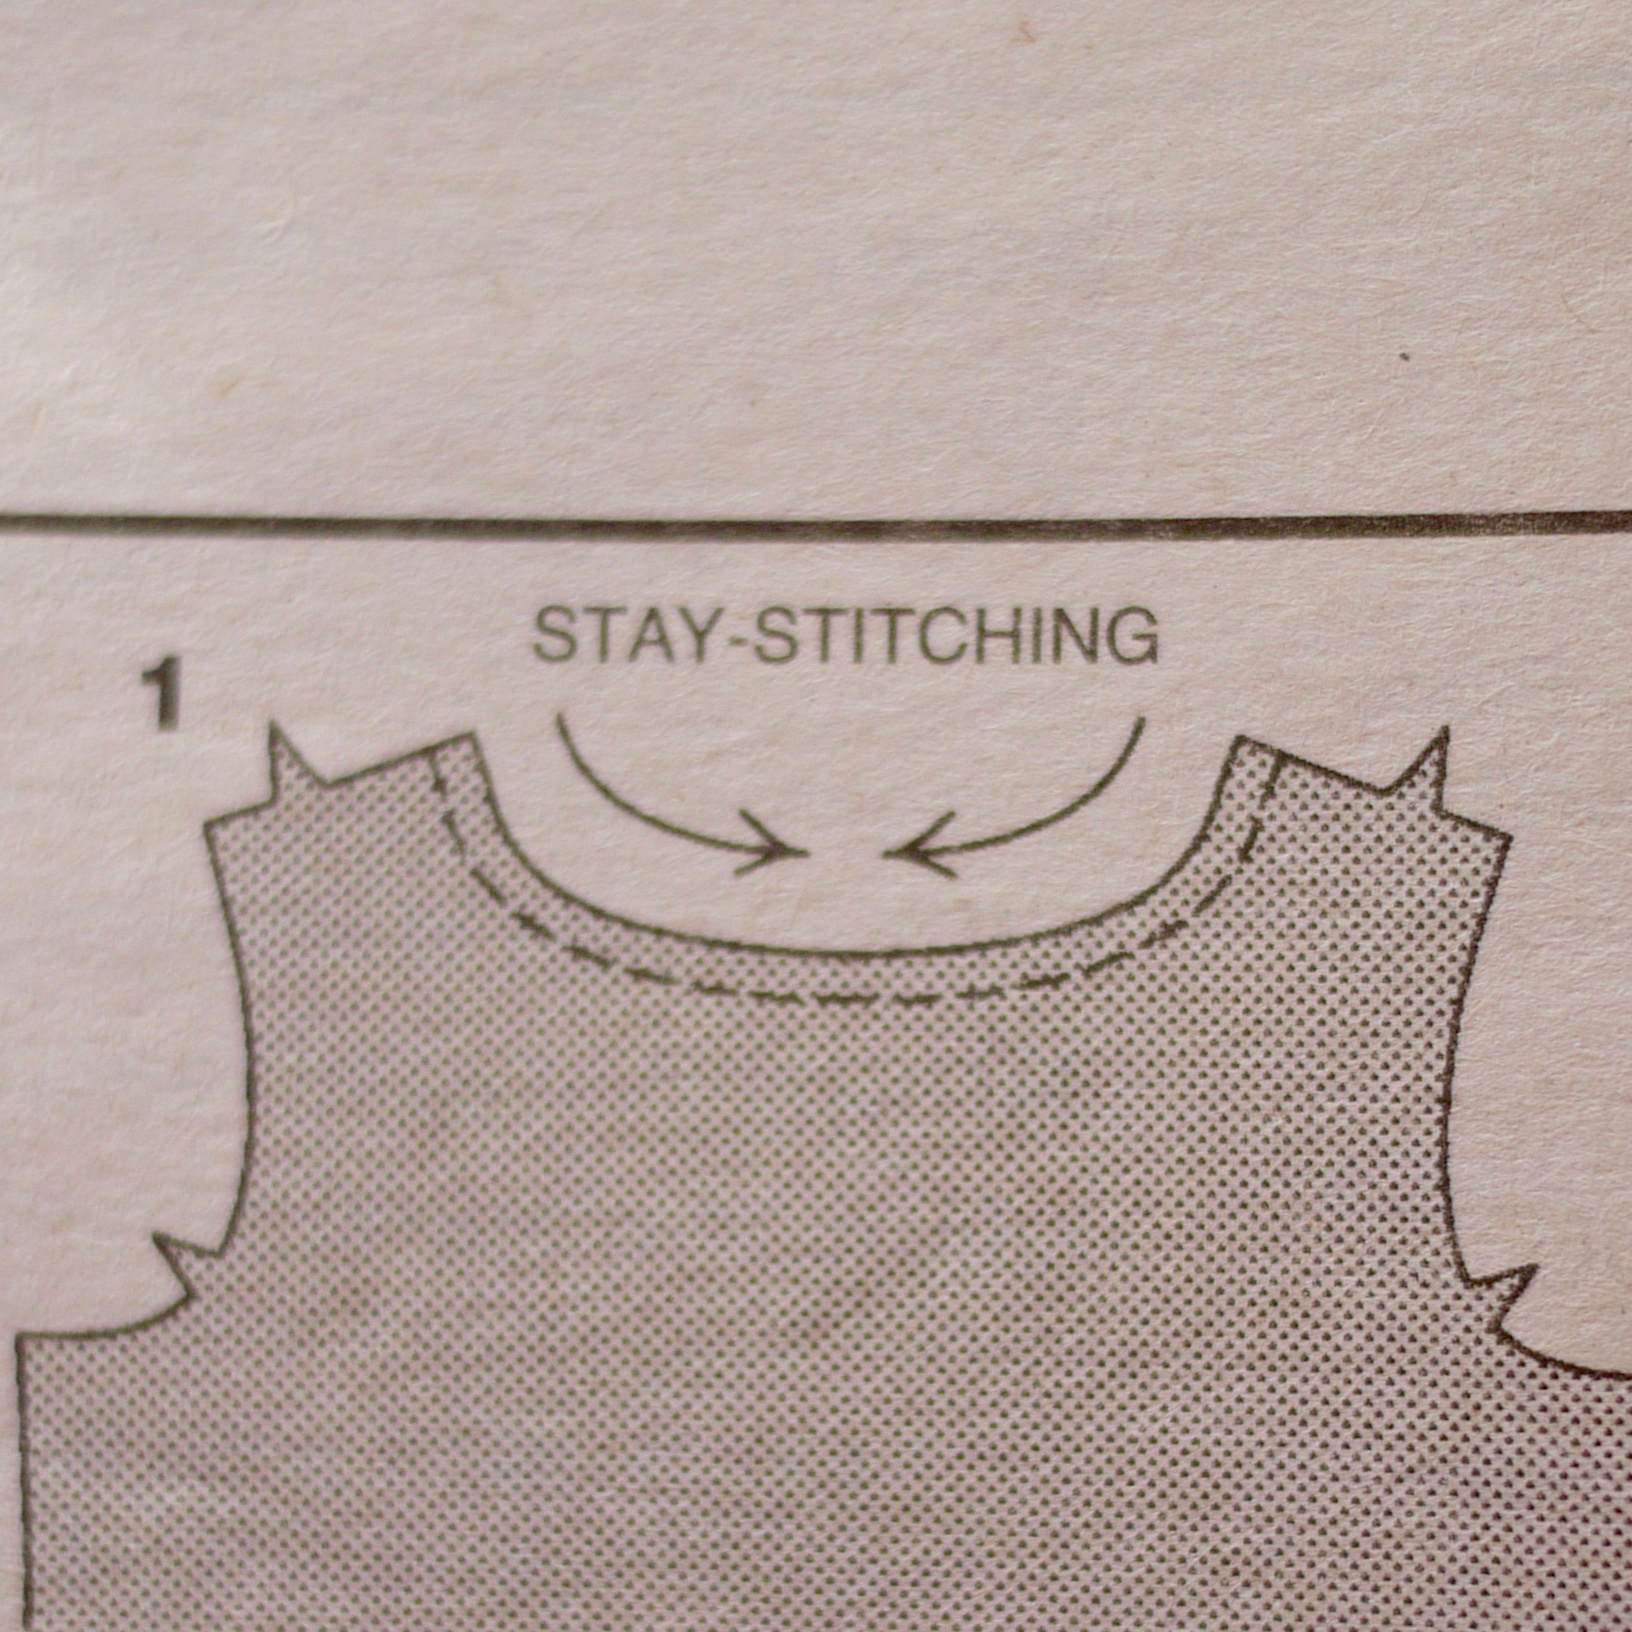 What is stay stitching?